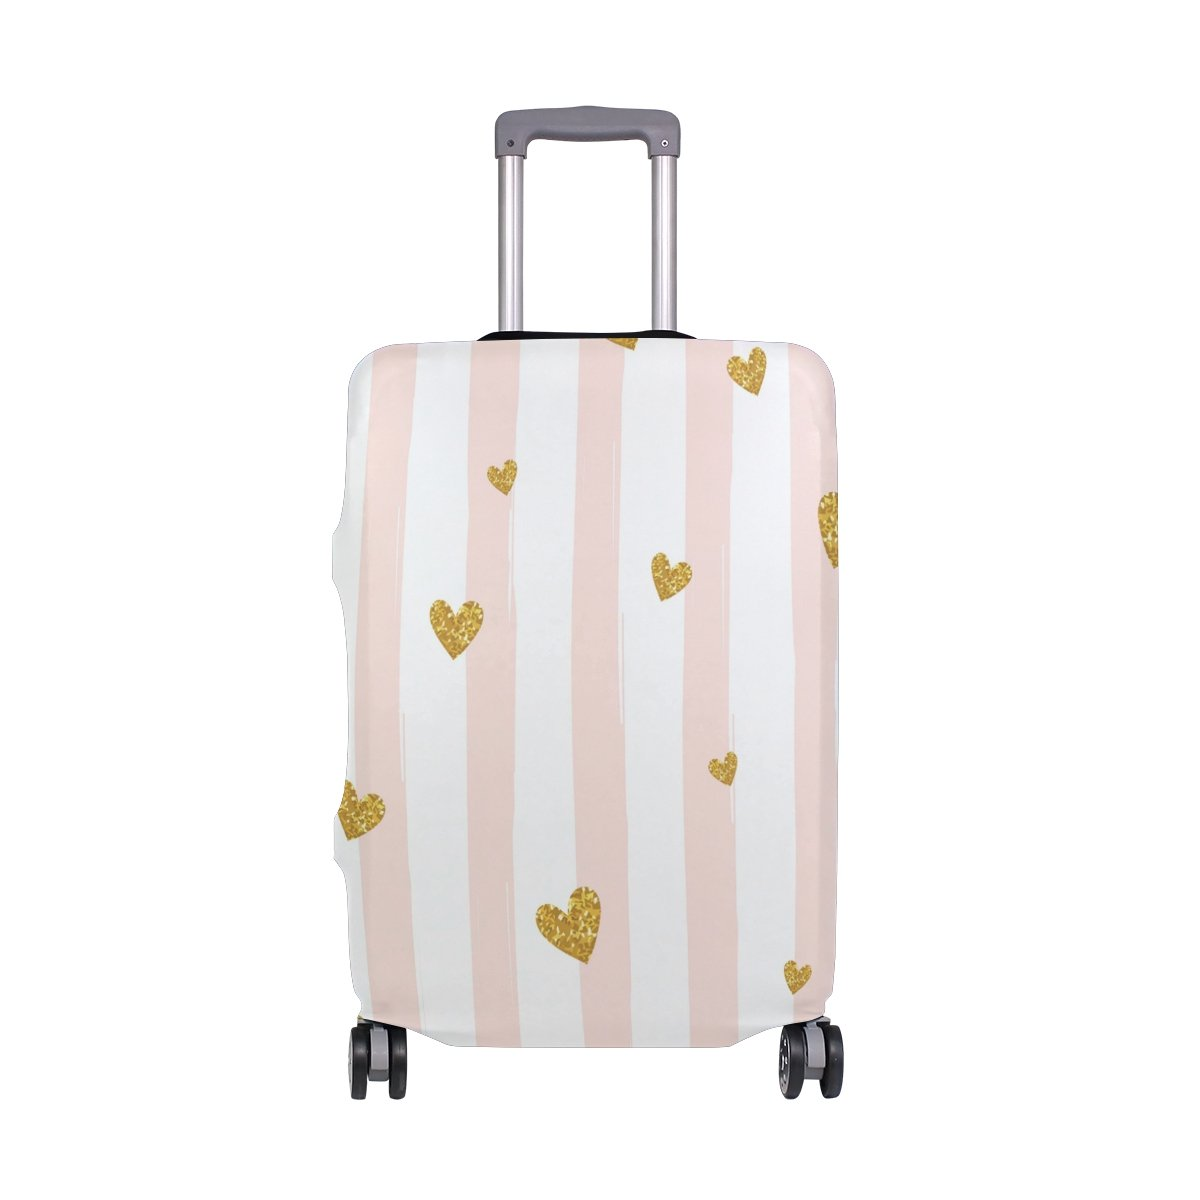 Stripe Love Luggage Cover Suitcase Protector Washable Spandex Baggage Cover with Zipper for Travel, Business and Outdoor by Yomole (Image #1)